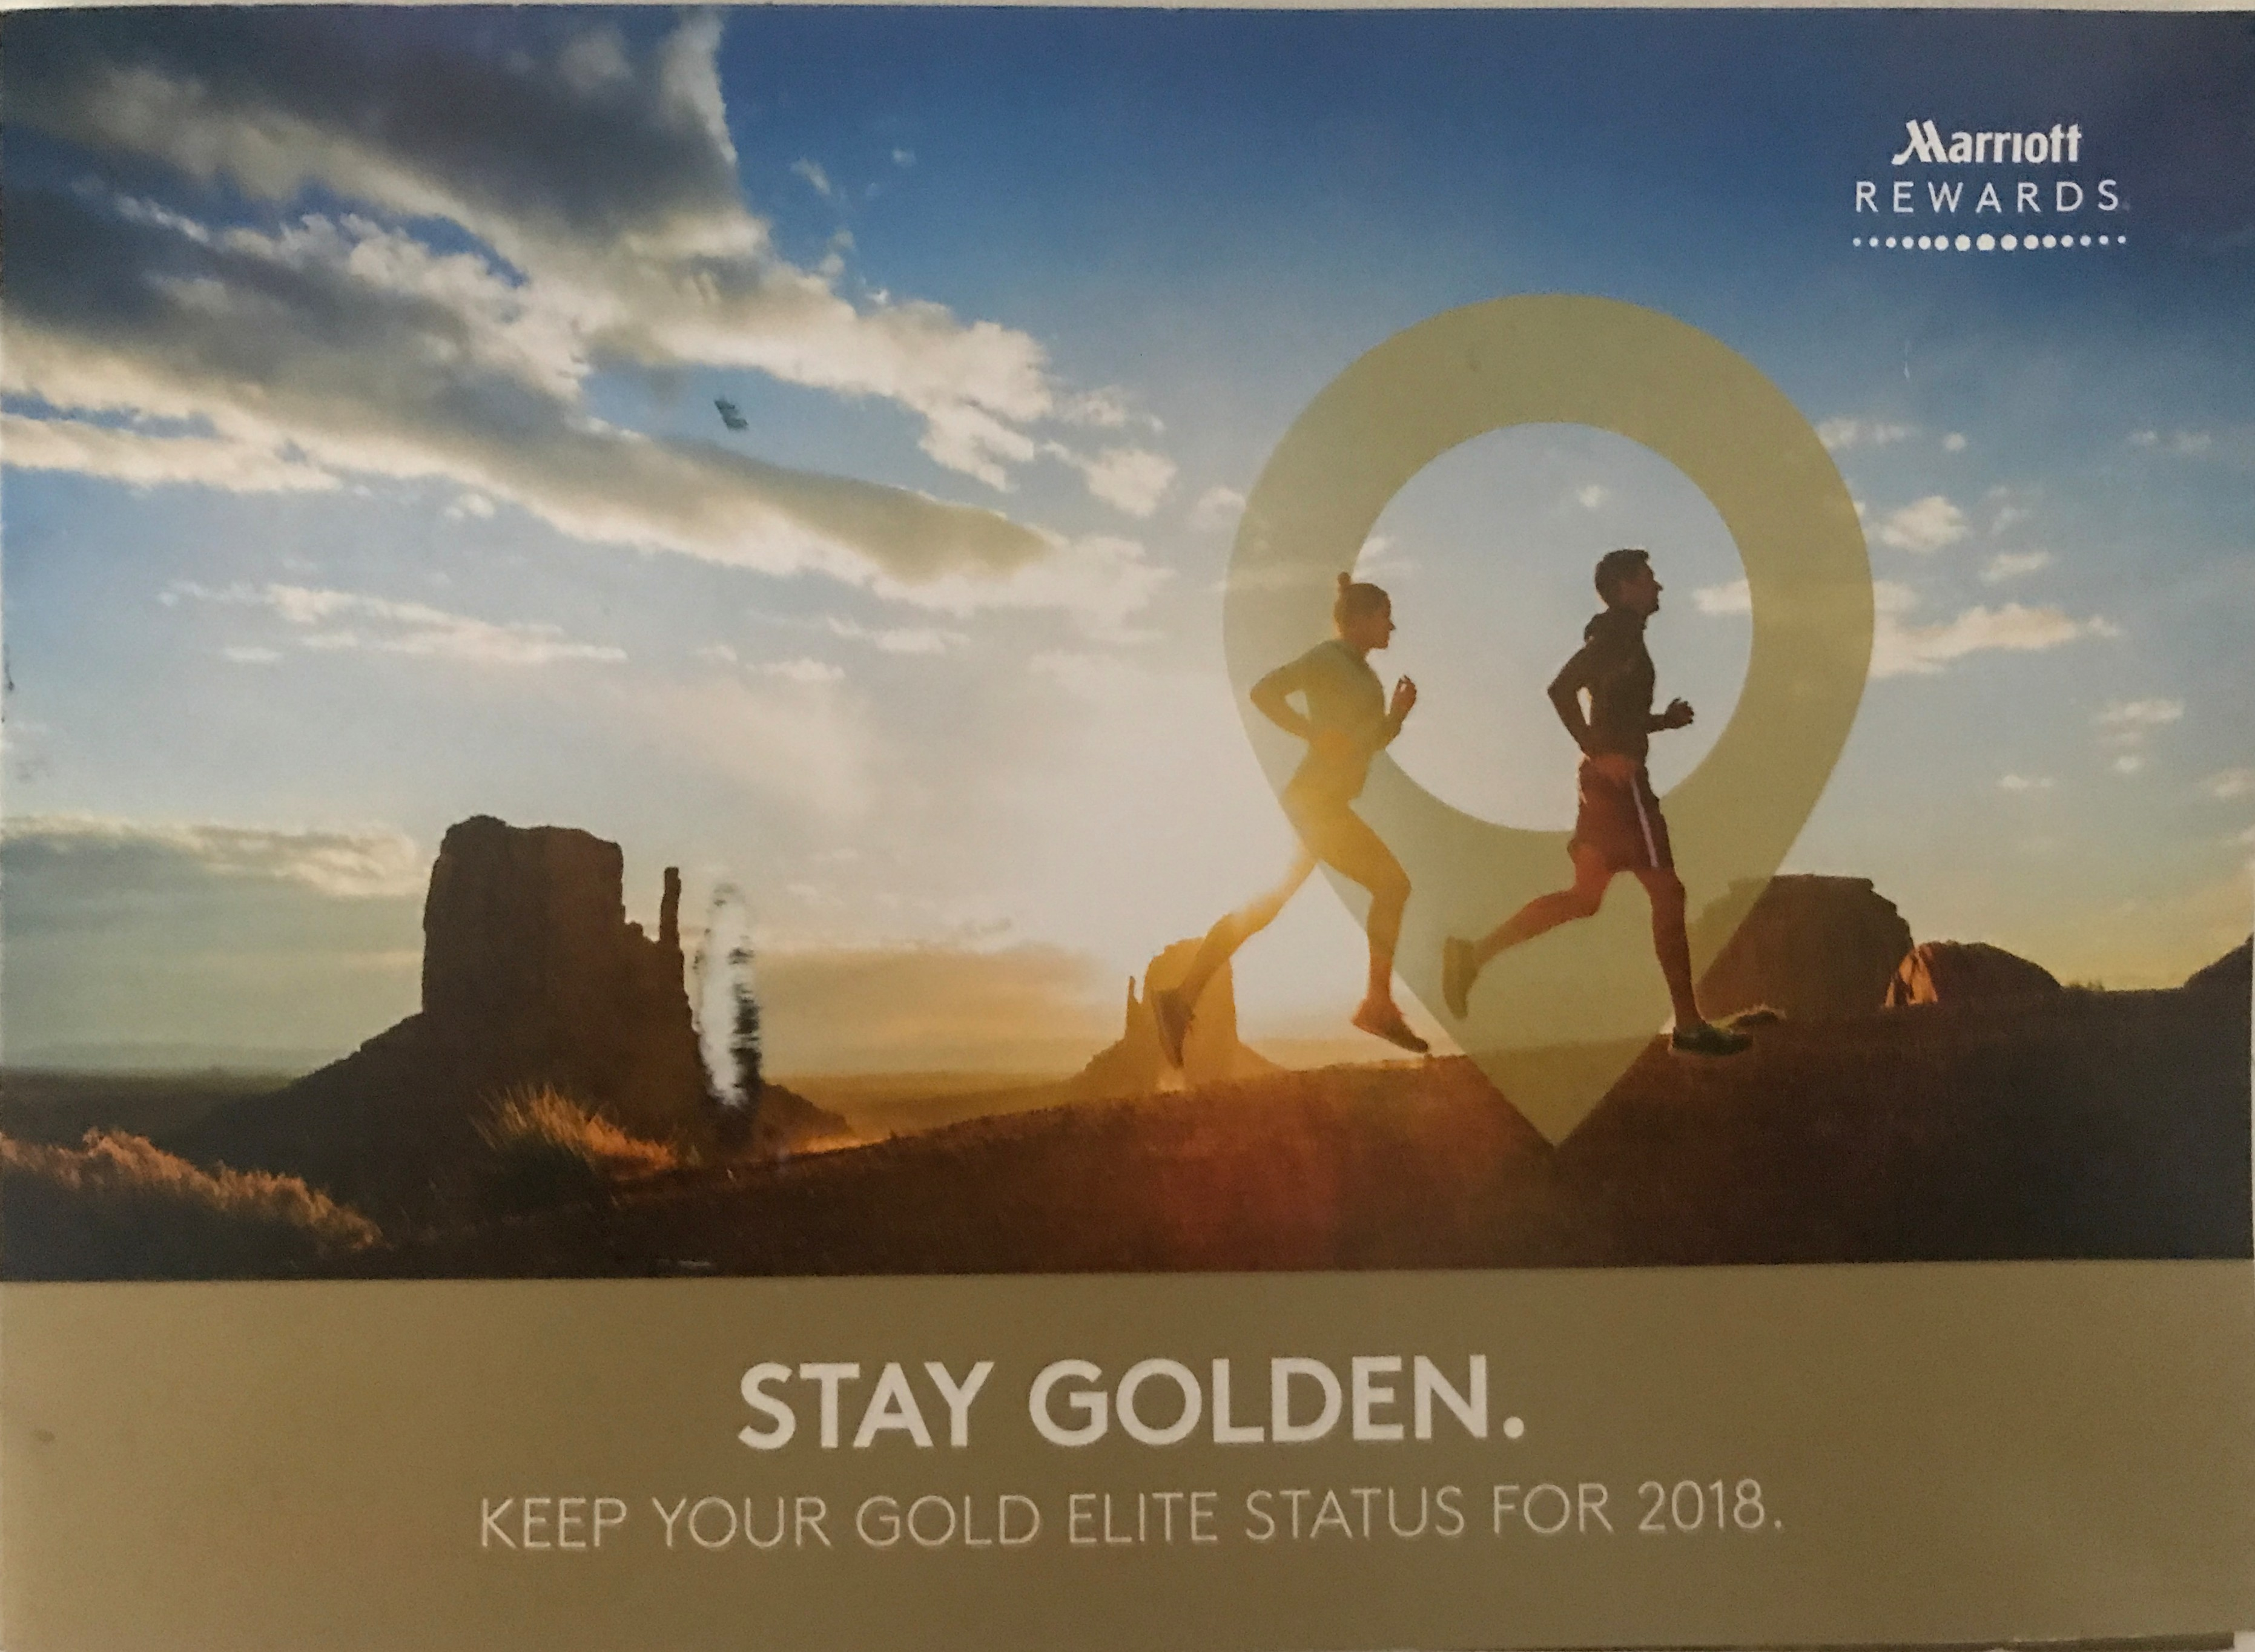 Keep Marriott Gold Elite Status Through February 2019 for ONLY 32 Qualifying Nights